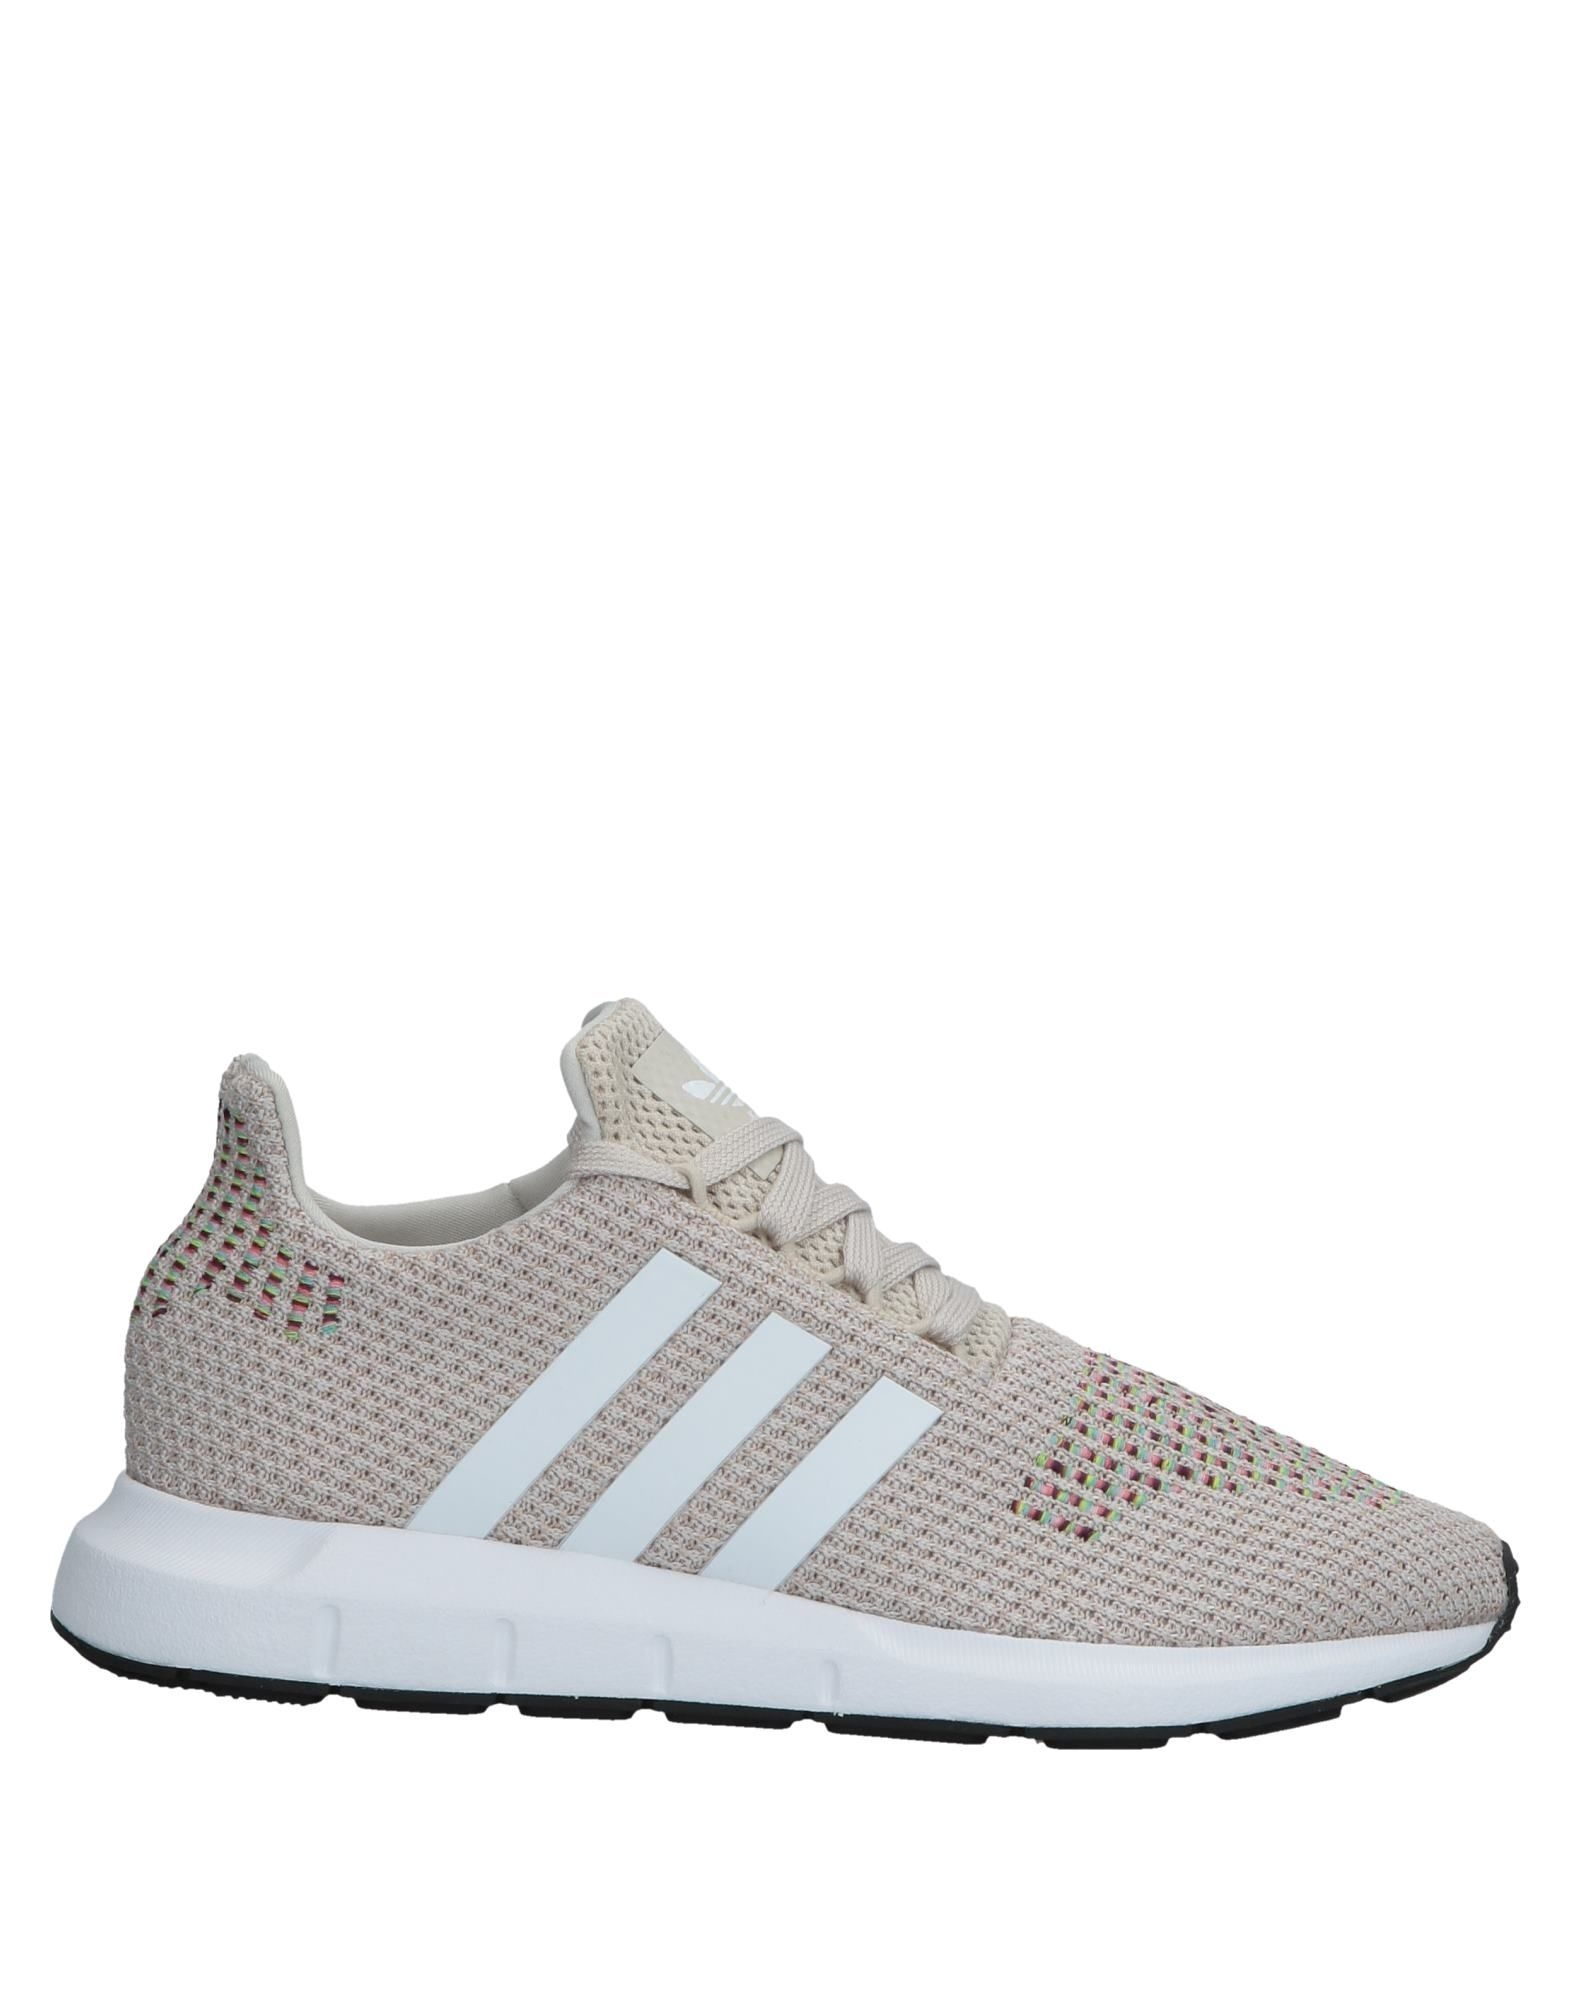 Adidas Originals Sneakers - Women Adidas  Originals Sneakers online on  Adidas Australia - 11561785VG 7cdd28